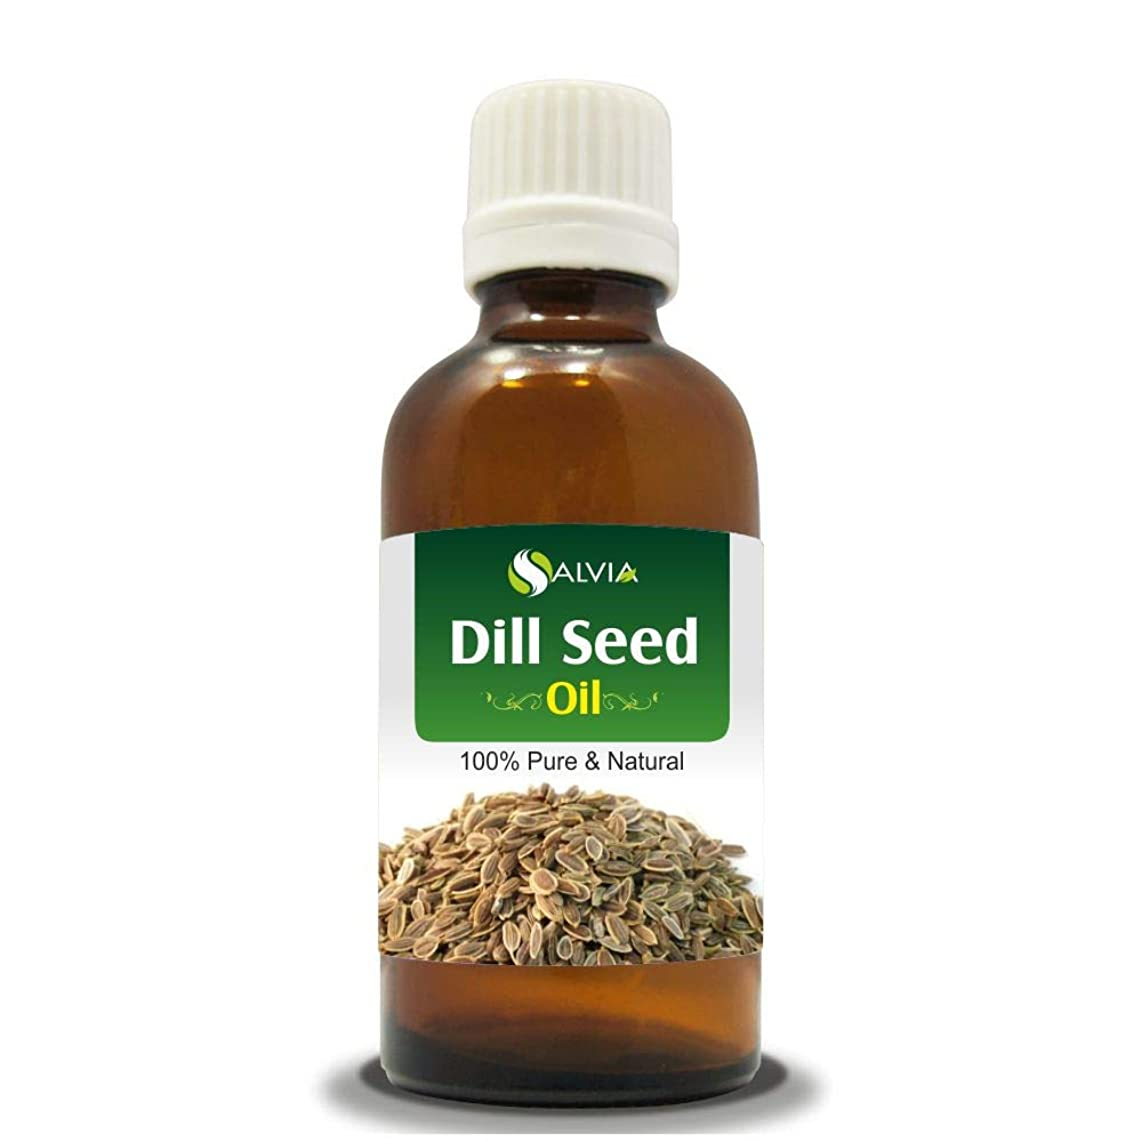 見落とす崖ブラジャーDILL SEED OIL 100% NATURAL PURE UNDILUTED UNCUT ESSENTIAL OIL 15ML